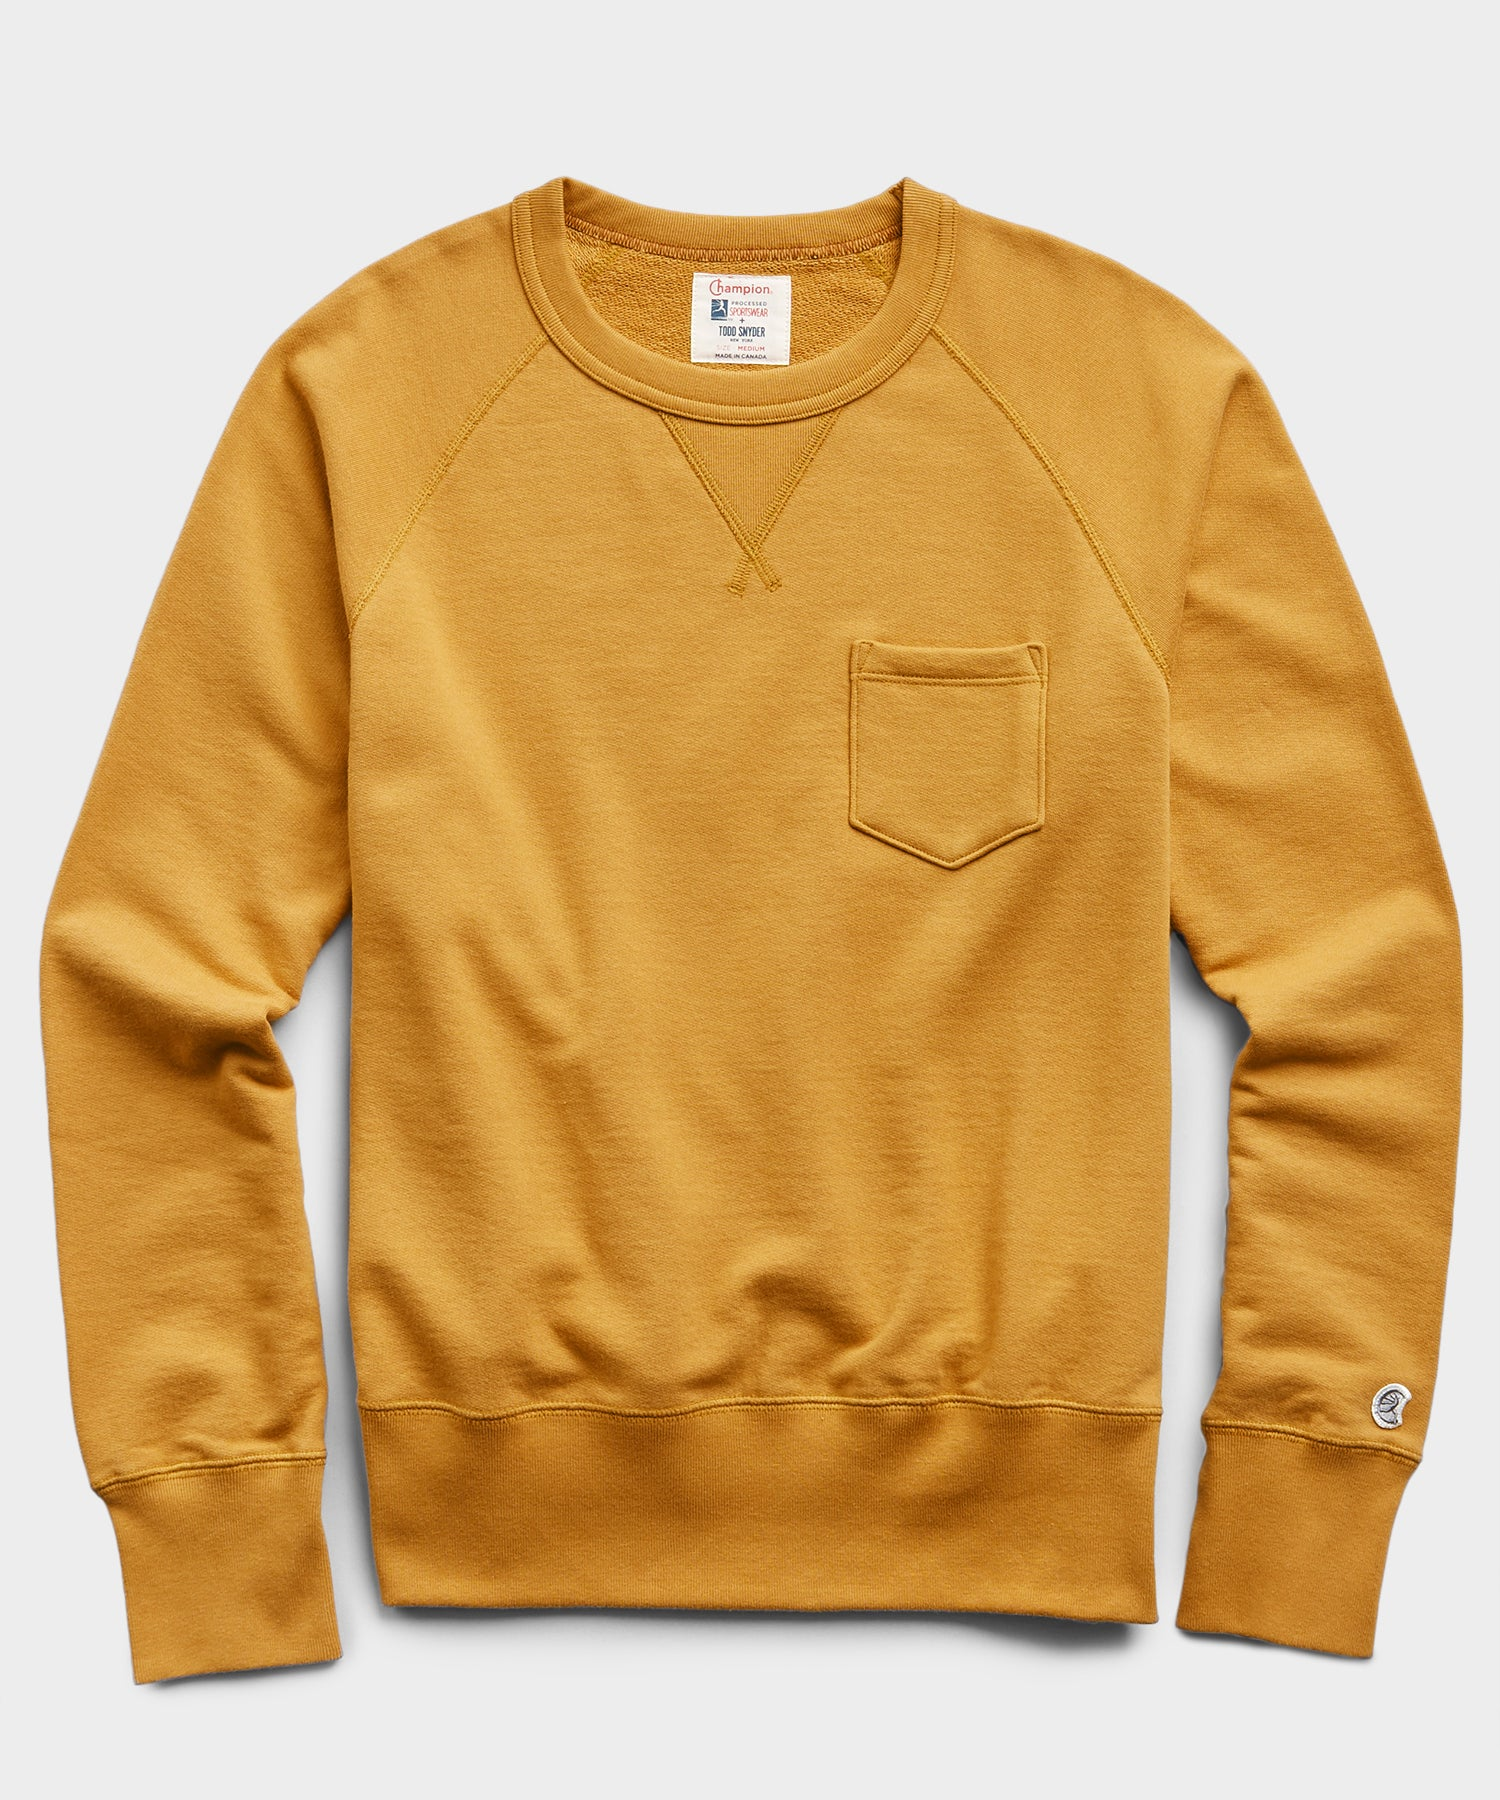 Midweight Pocket Sweatshirt in Mustard